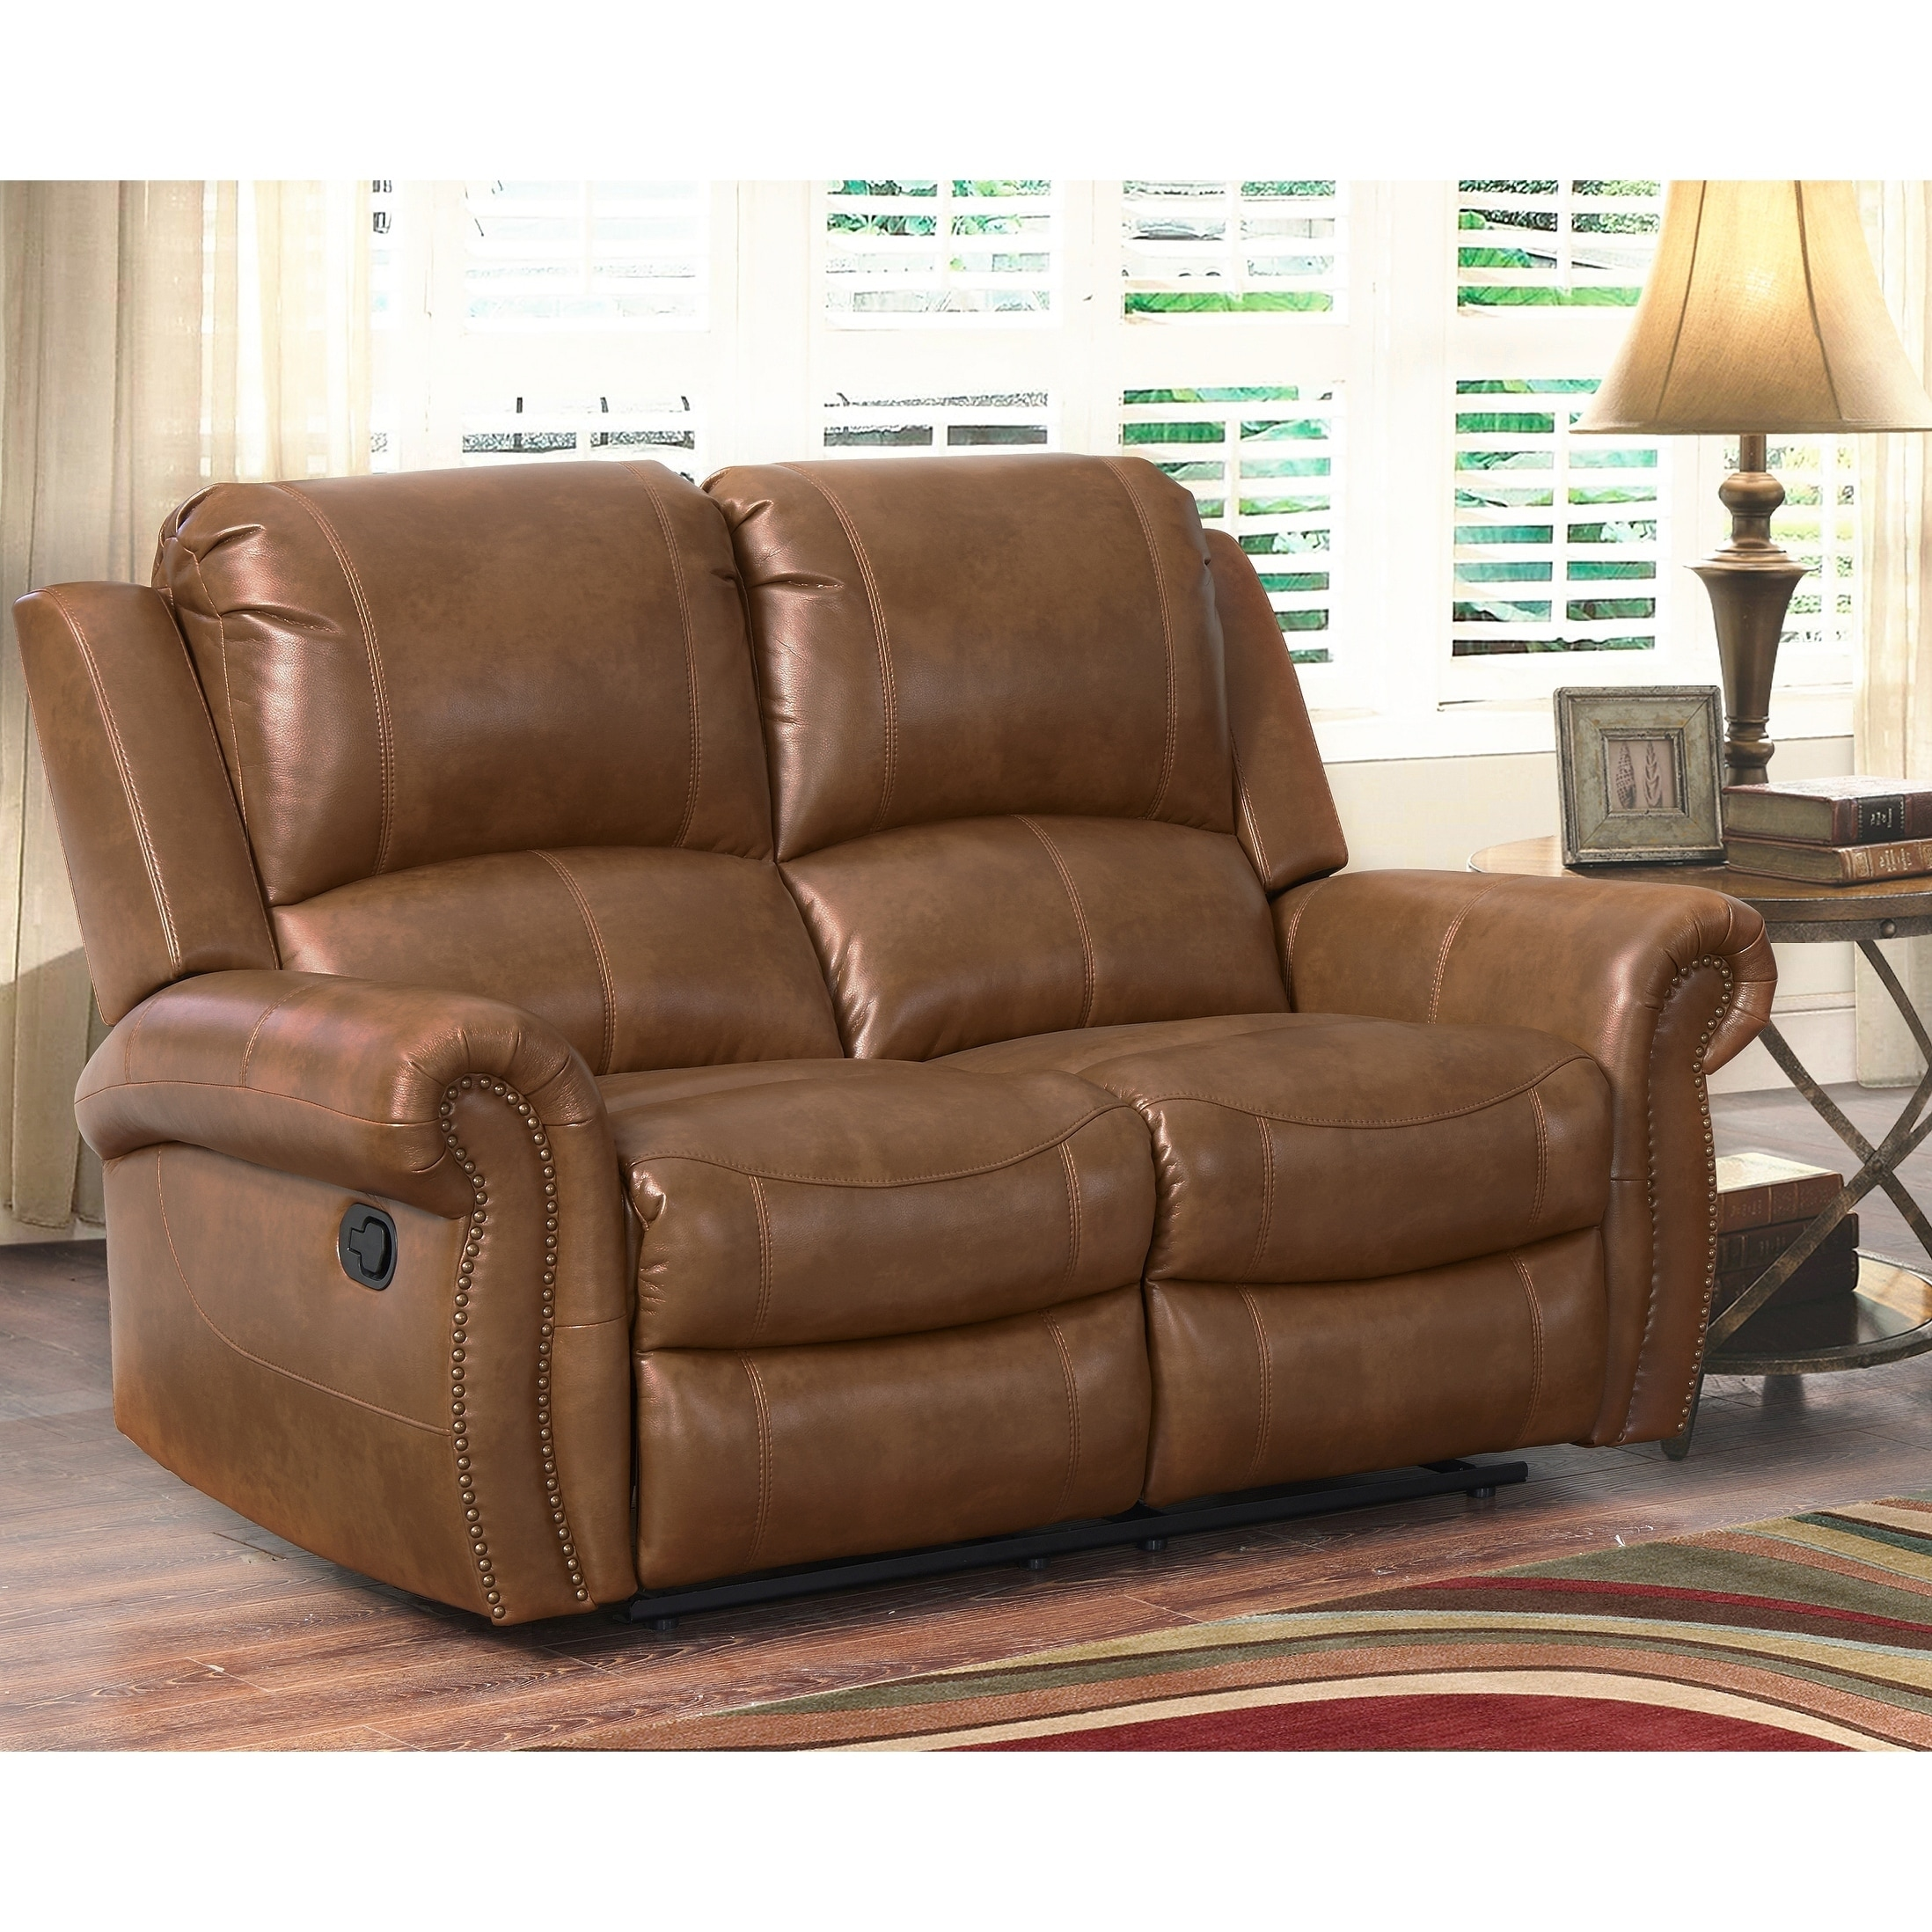 Leather Recliner Set Coffee Tables Ideas